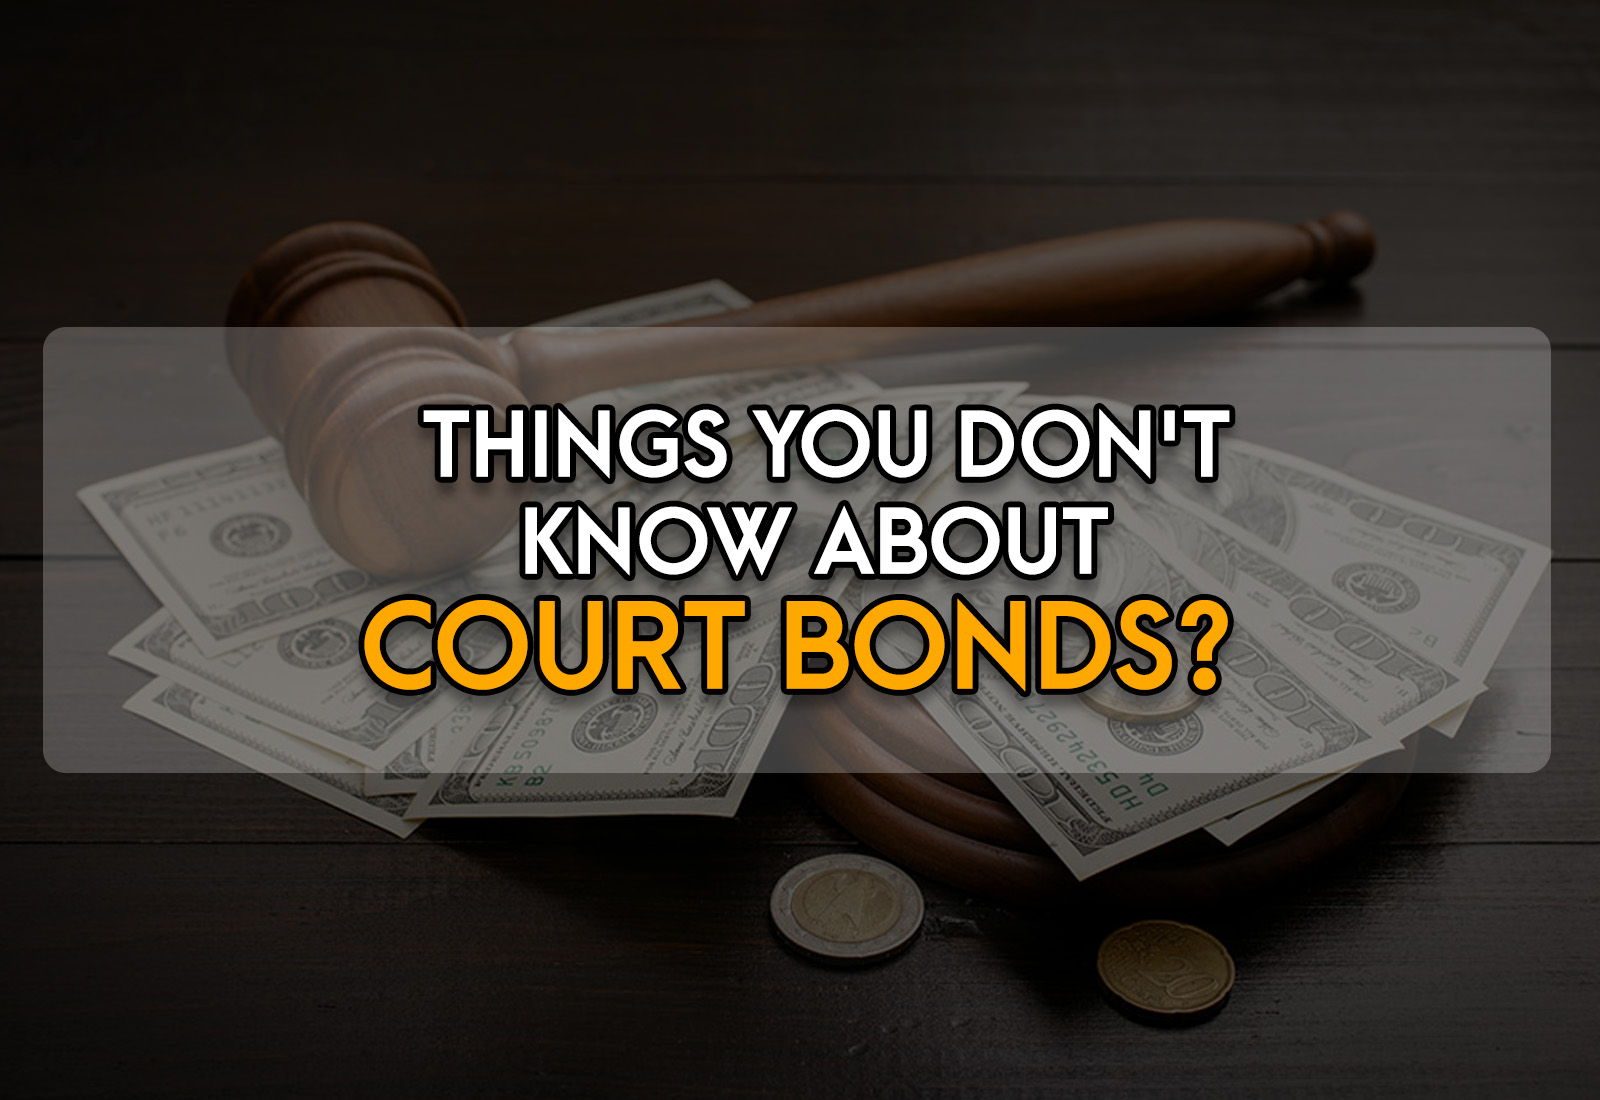 Things You Don't Know About Court Bonds